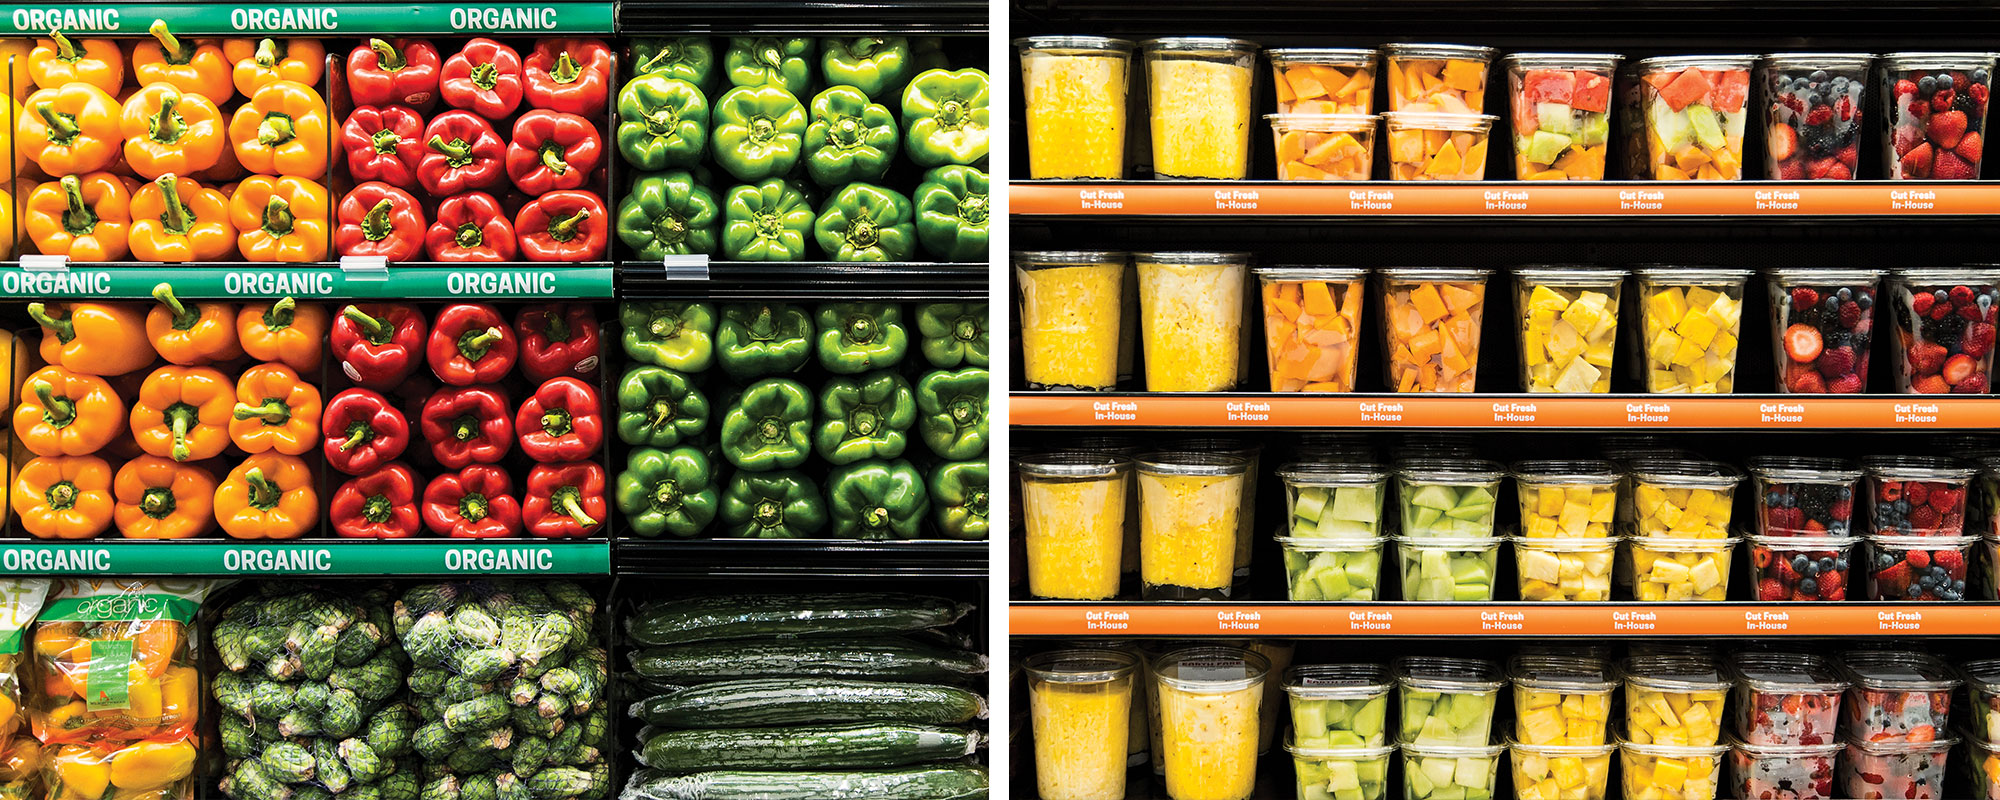 Fresh vegetables and fresh-cut fruit line the shelves of Earth Fare supermarkets